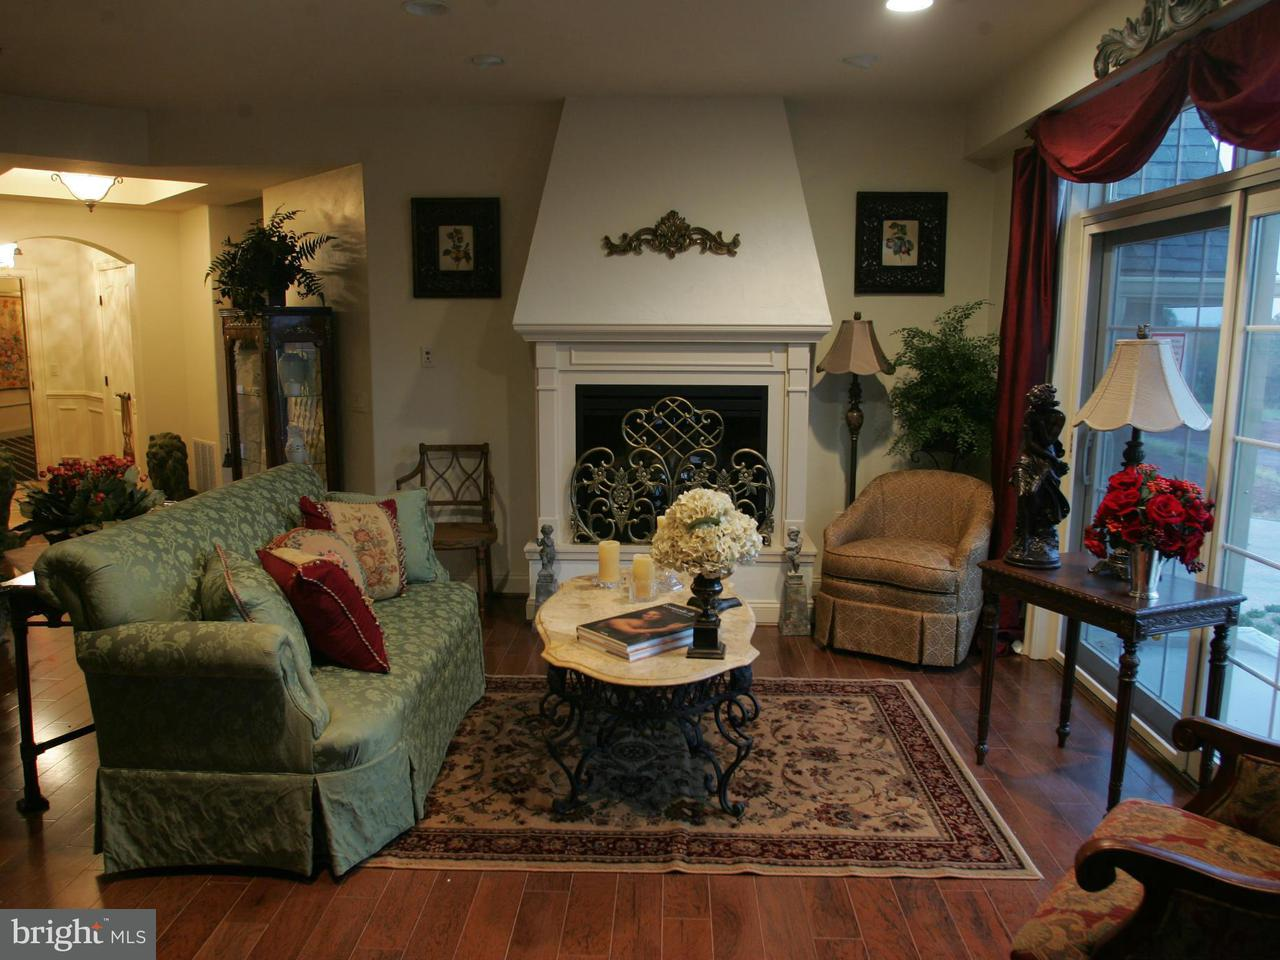 Additional photo for property listing at 220 SAVANNAH DR #202 220 SAVANNAH DR #202 Gettysburg, Pennsylvania 17325 Verenigde Staten